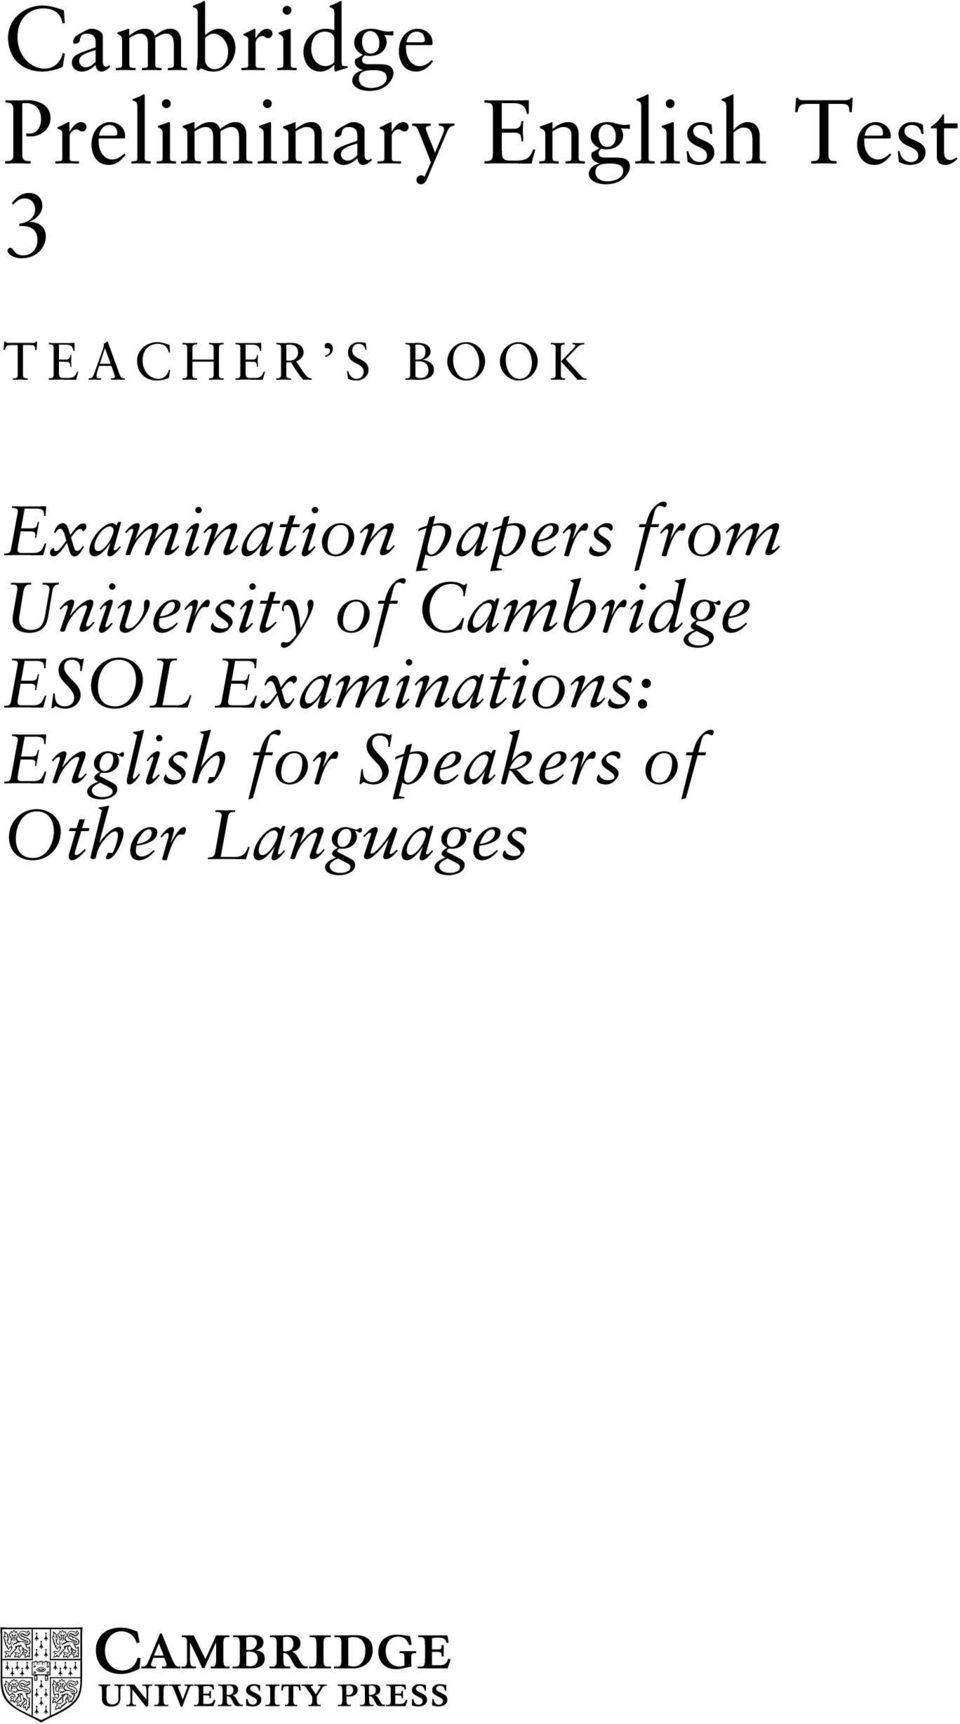 Cambridge Preliminary English Test 3 - PDF